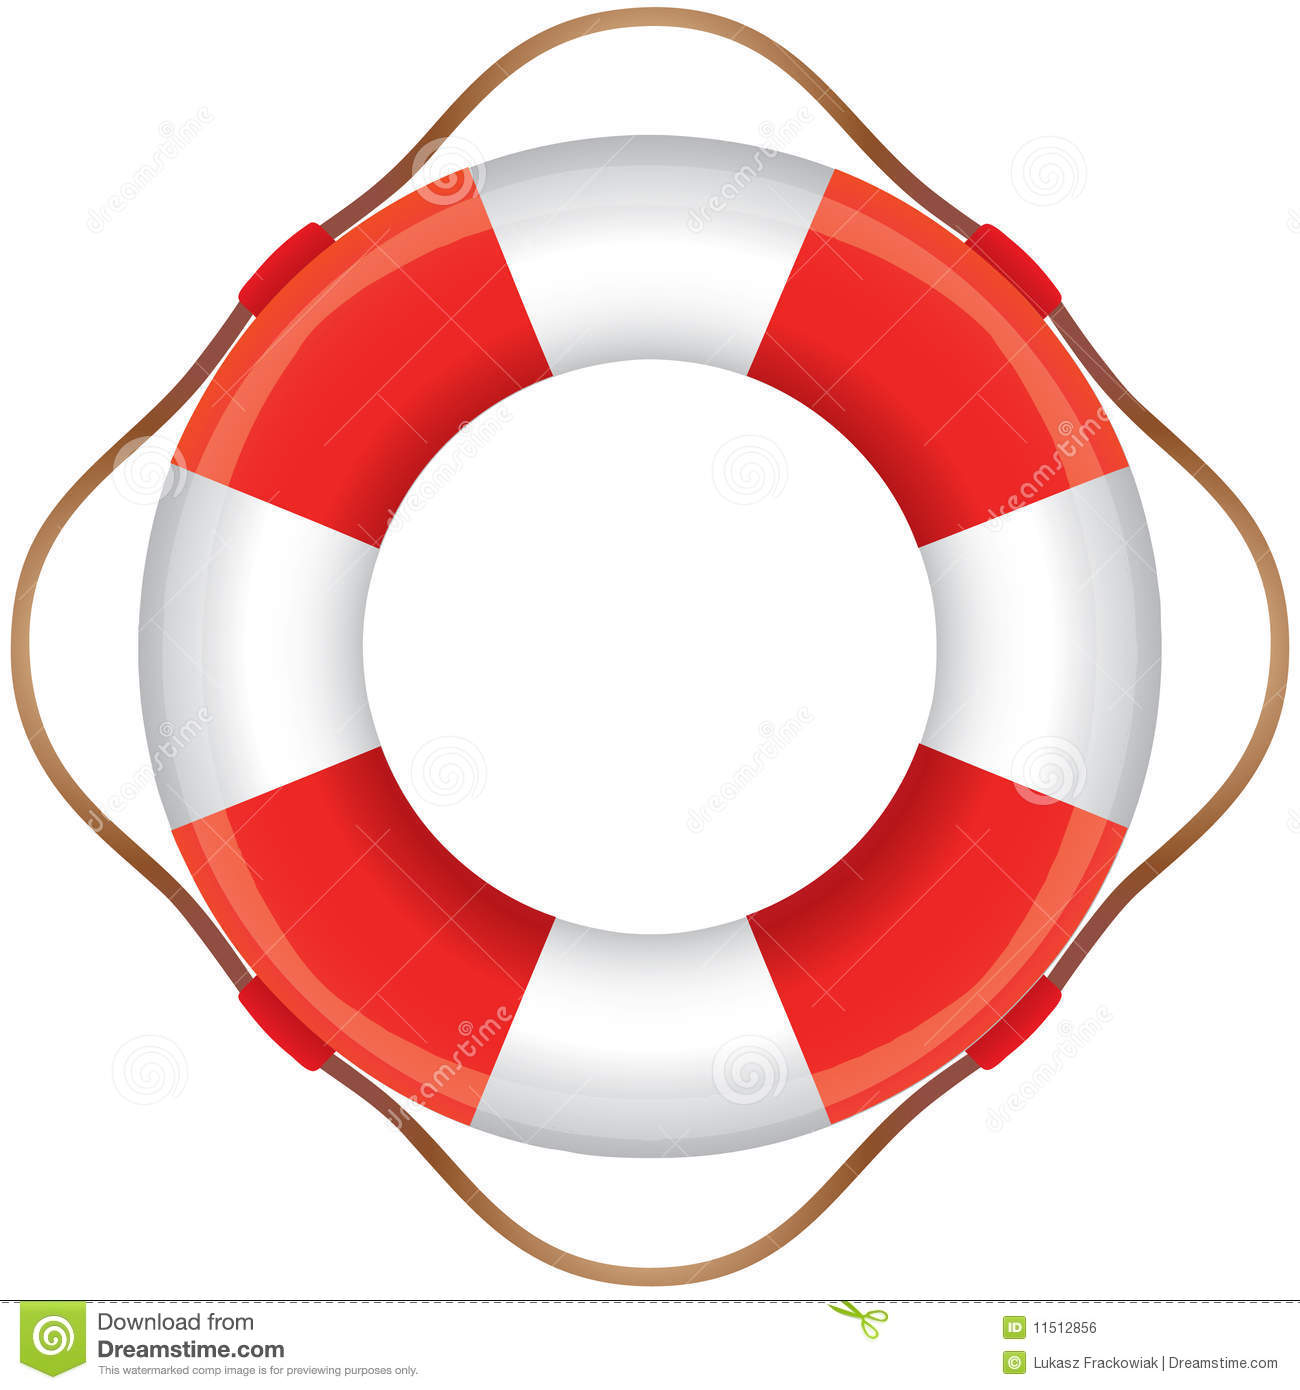 Lifebuoy Royalty Free Stock Image - Image: 11512856